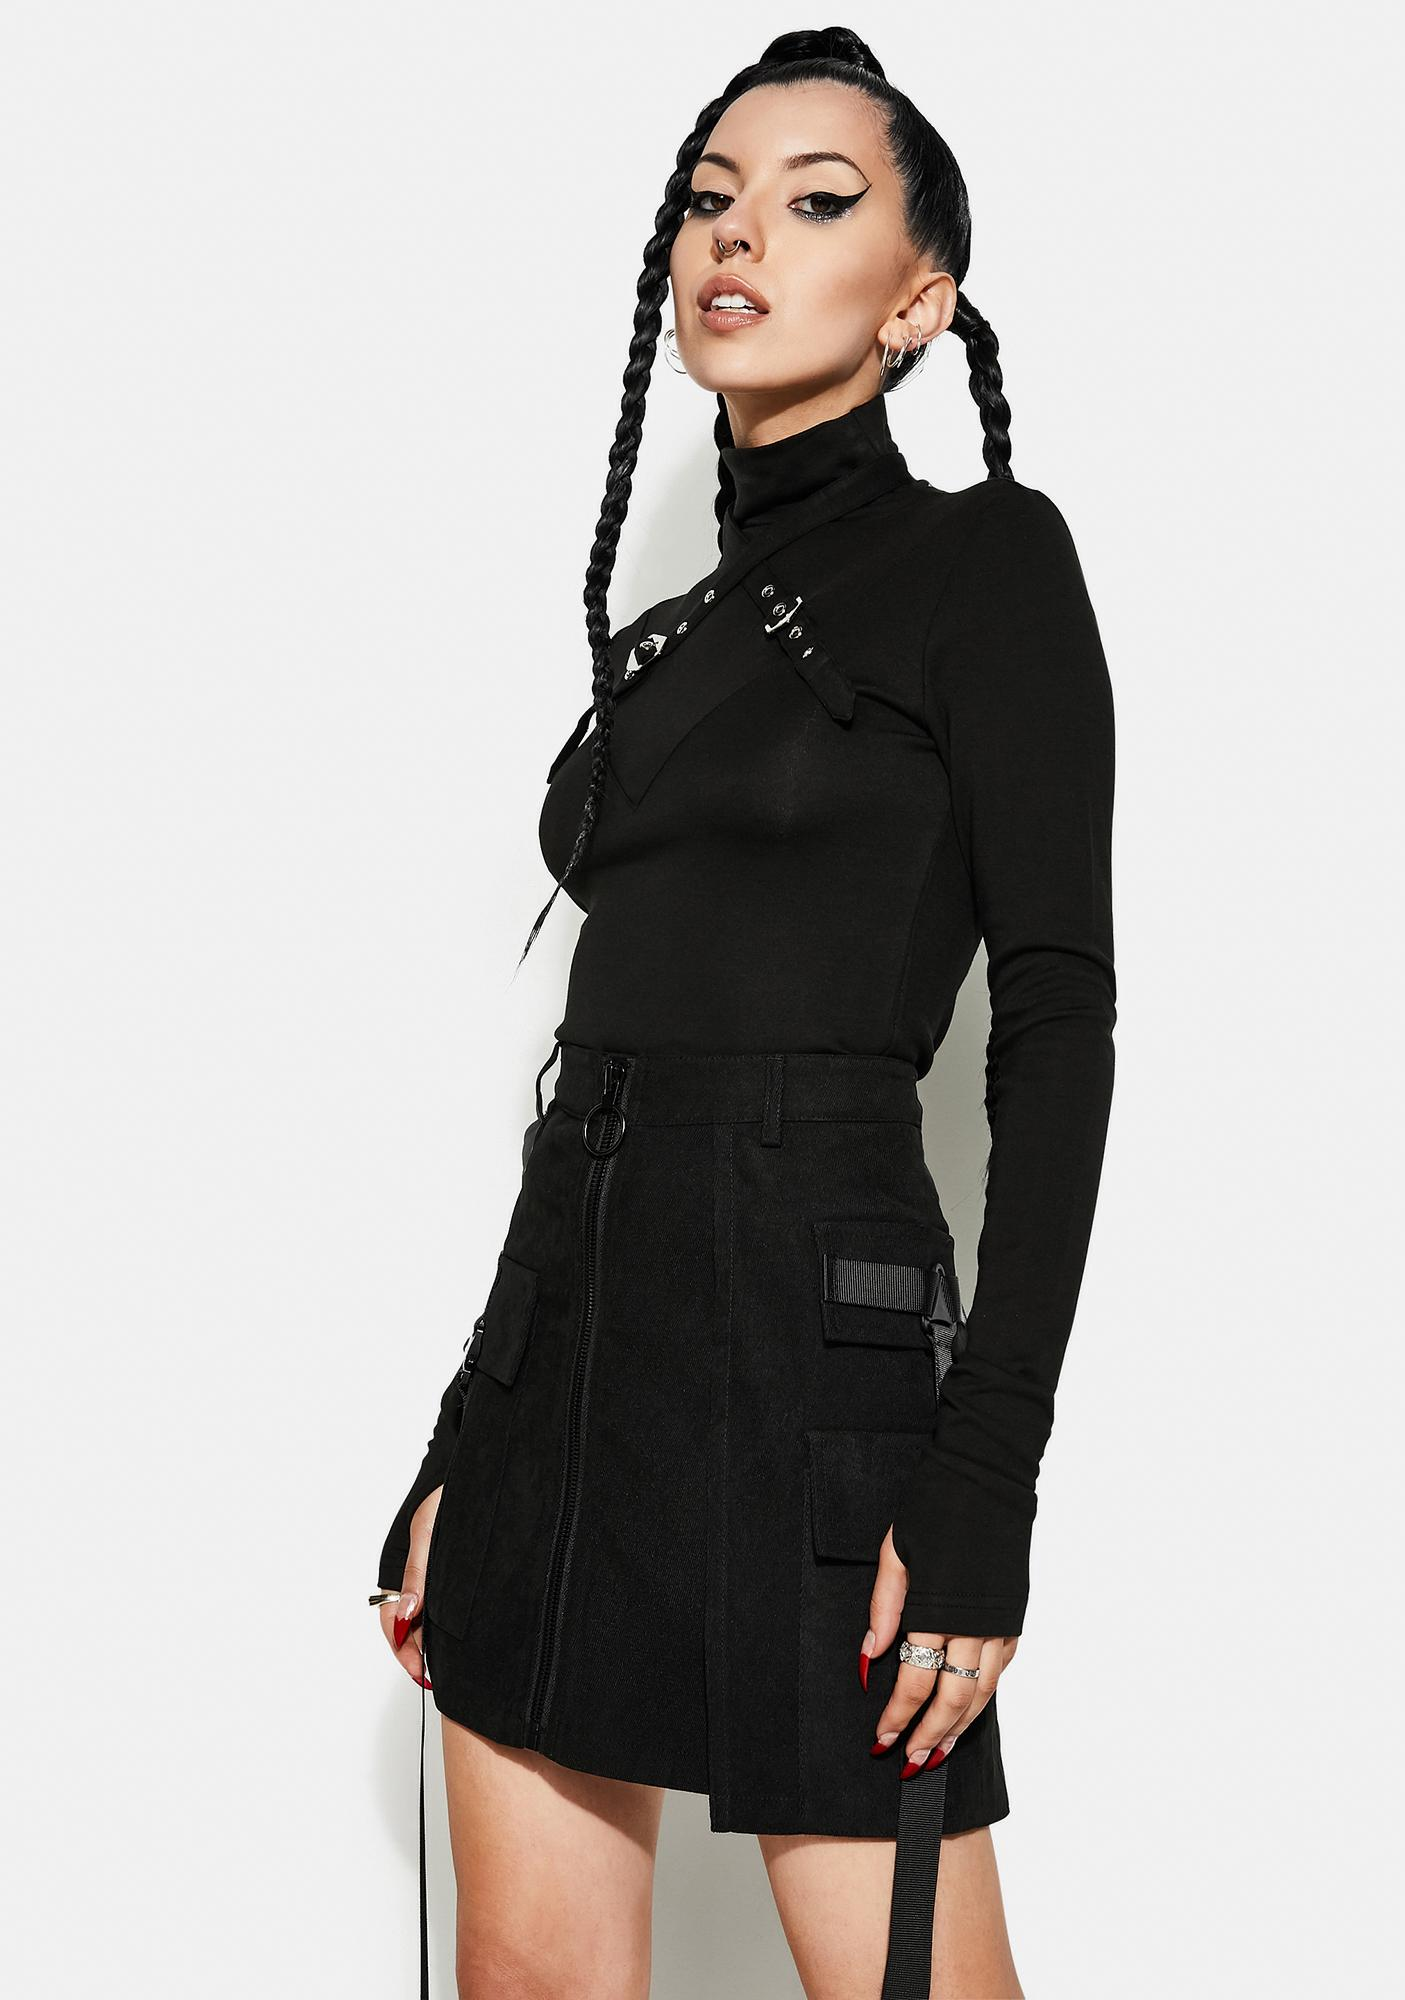 Punk Rave Punk Cross Shoulder Strap Long Sleeve Shirt